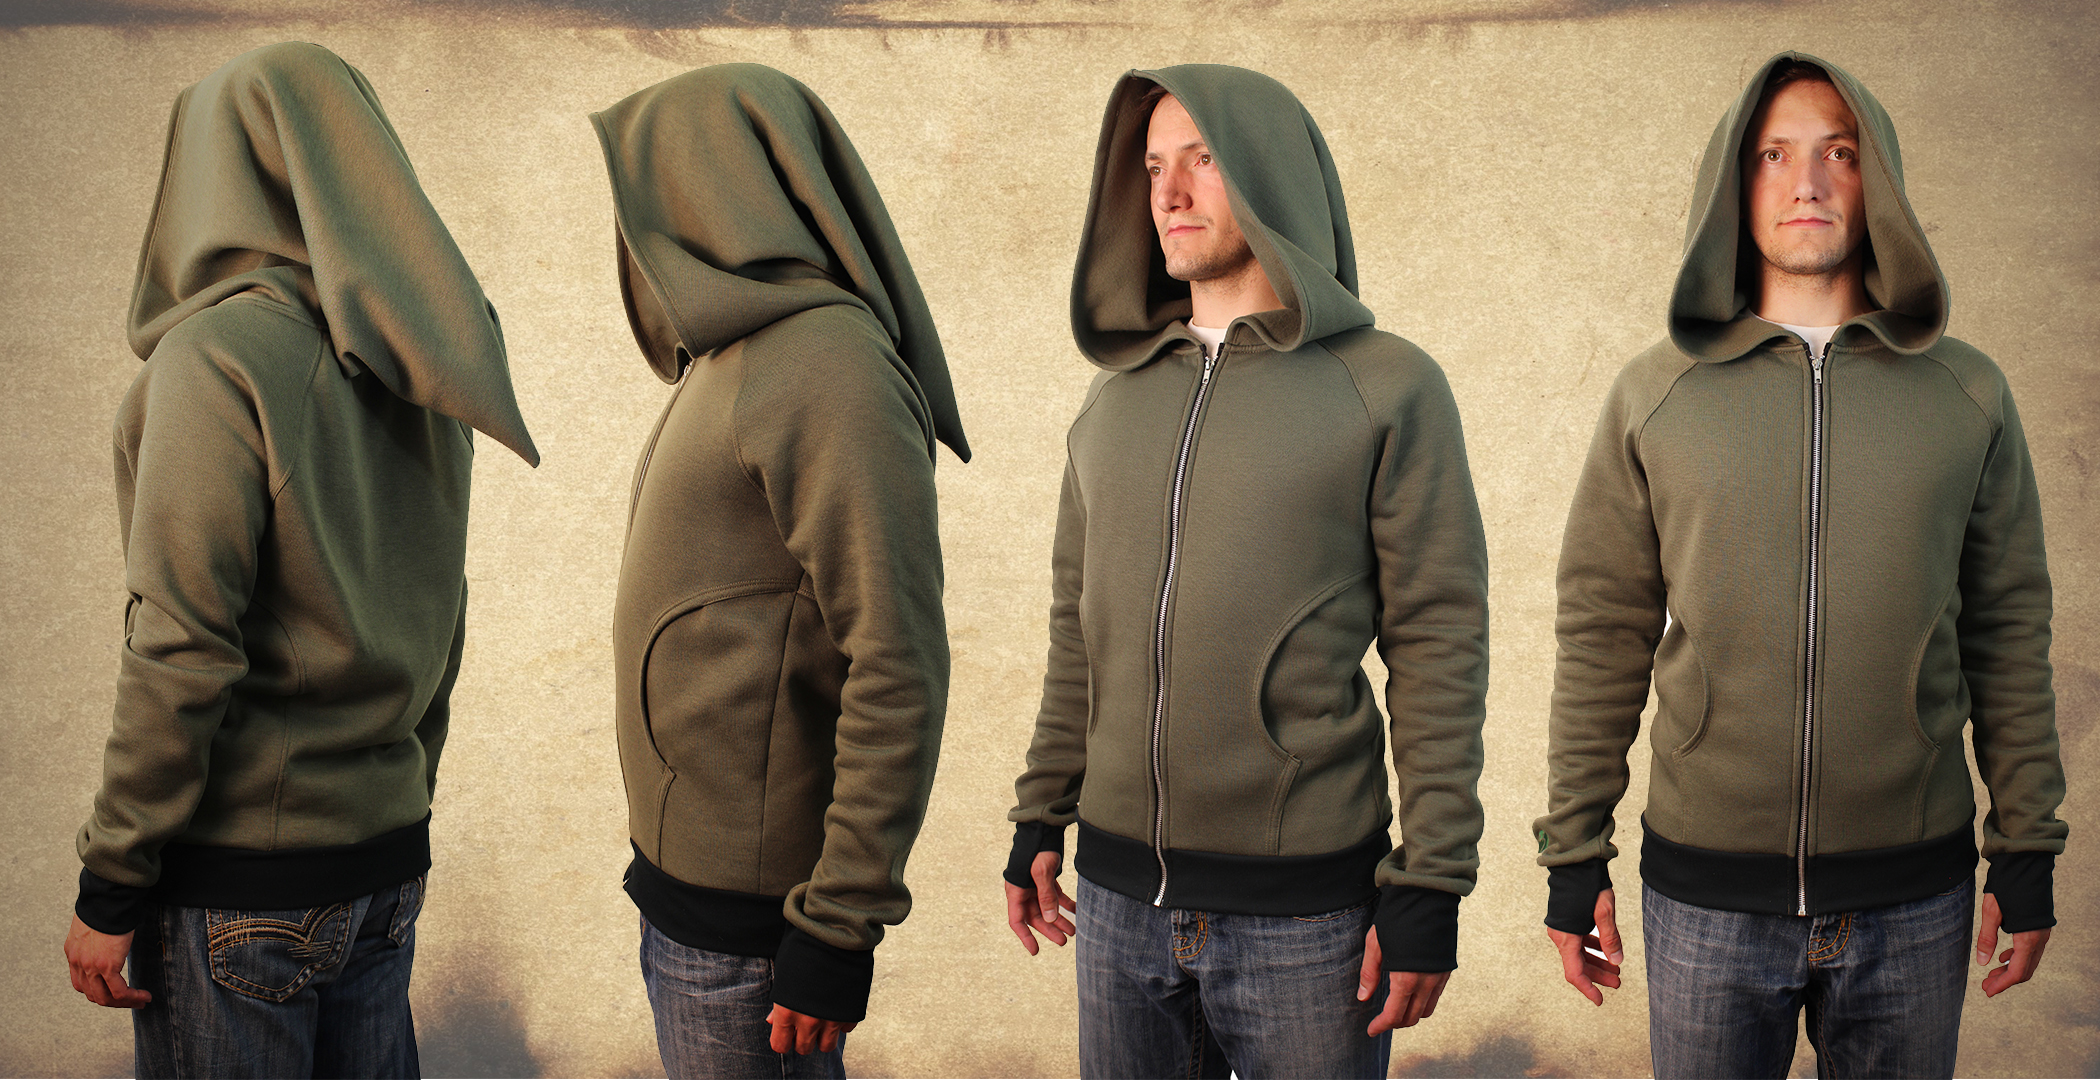 Coolest hoodie ever